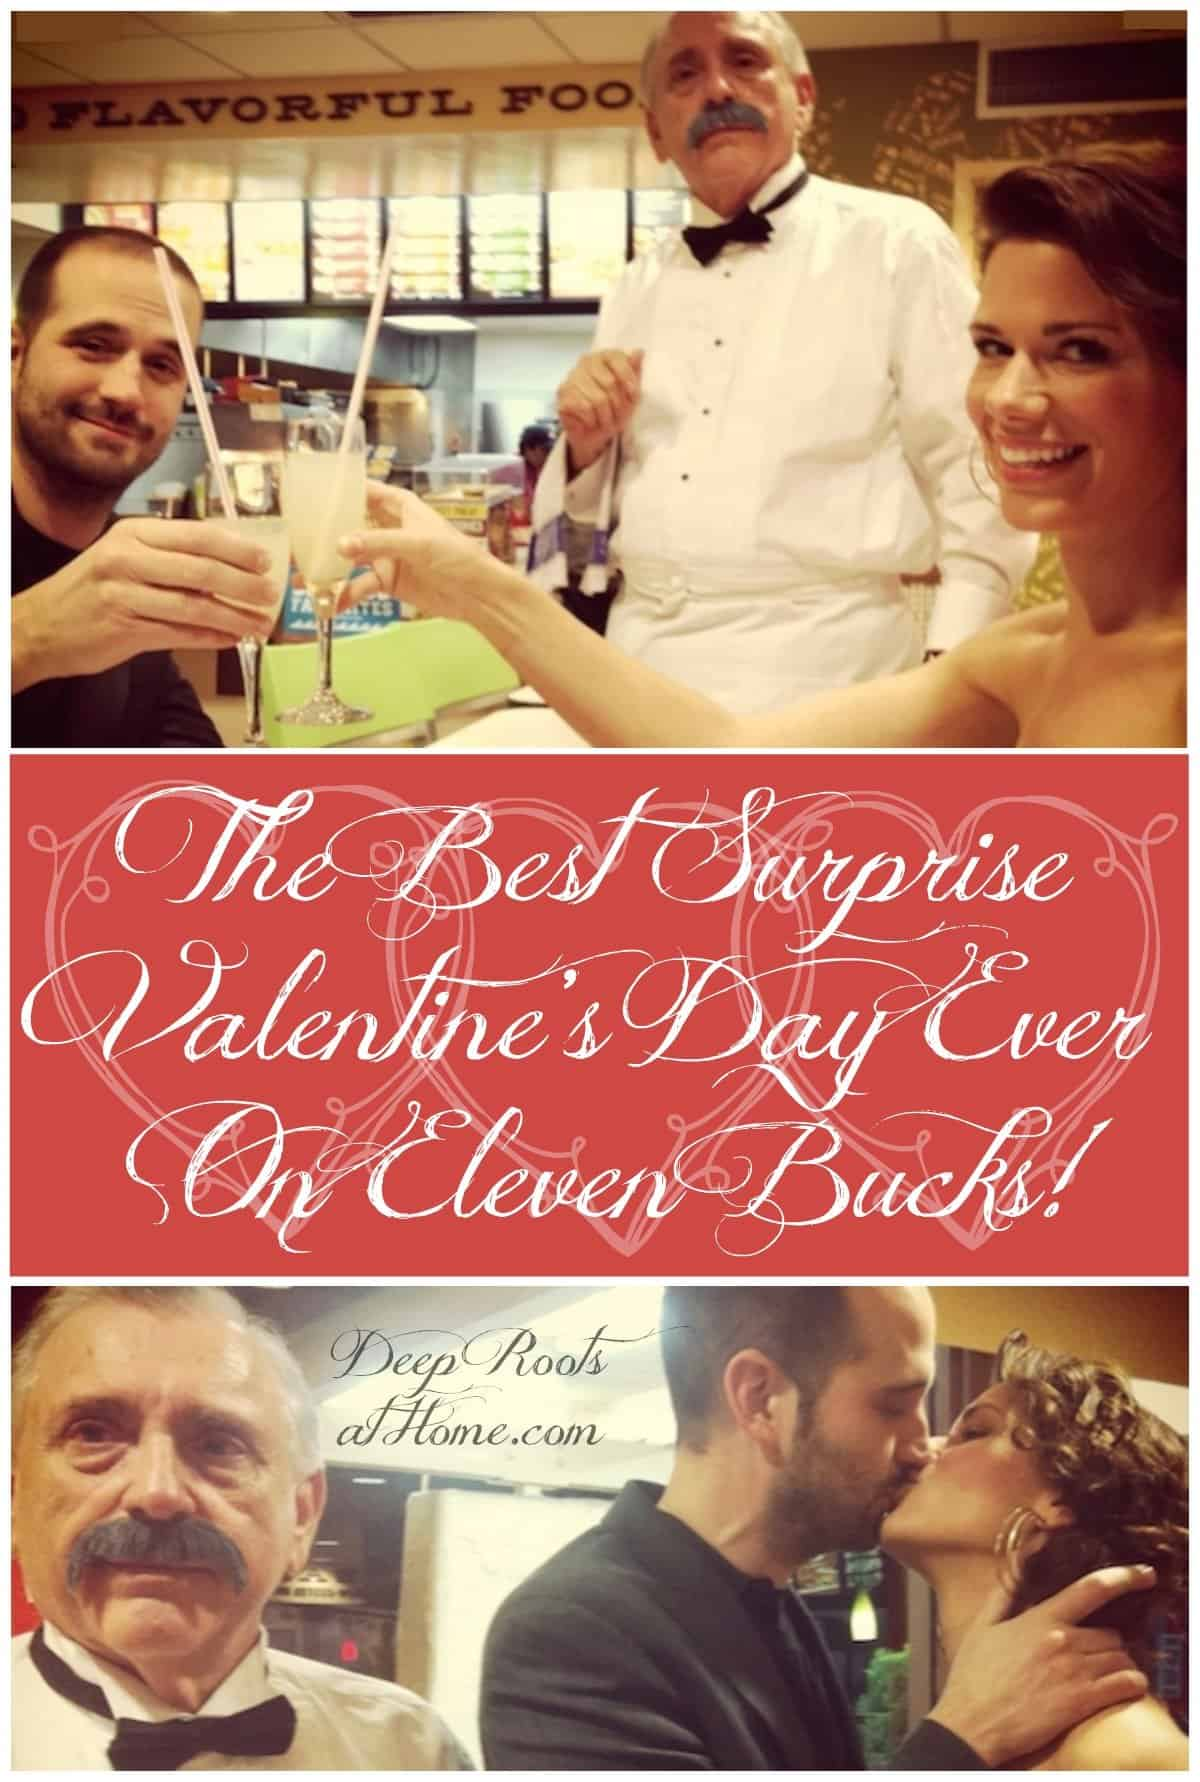 The Best Surprise Valentine's Day Ever On Eleven Bucks!, Kristina Kuzmic and husband surprise